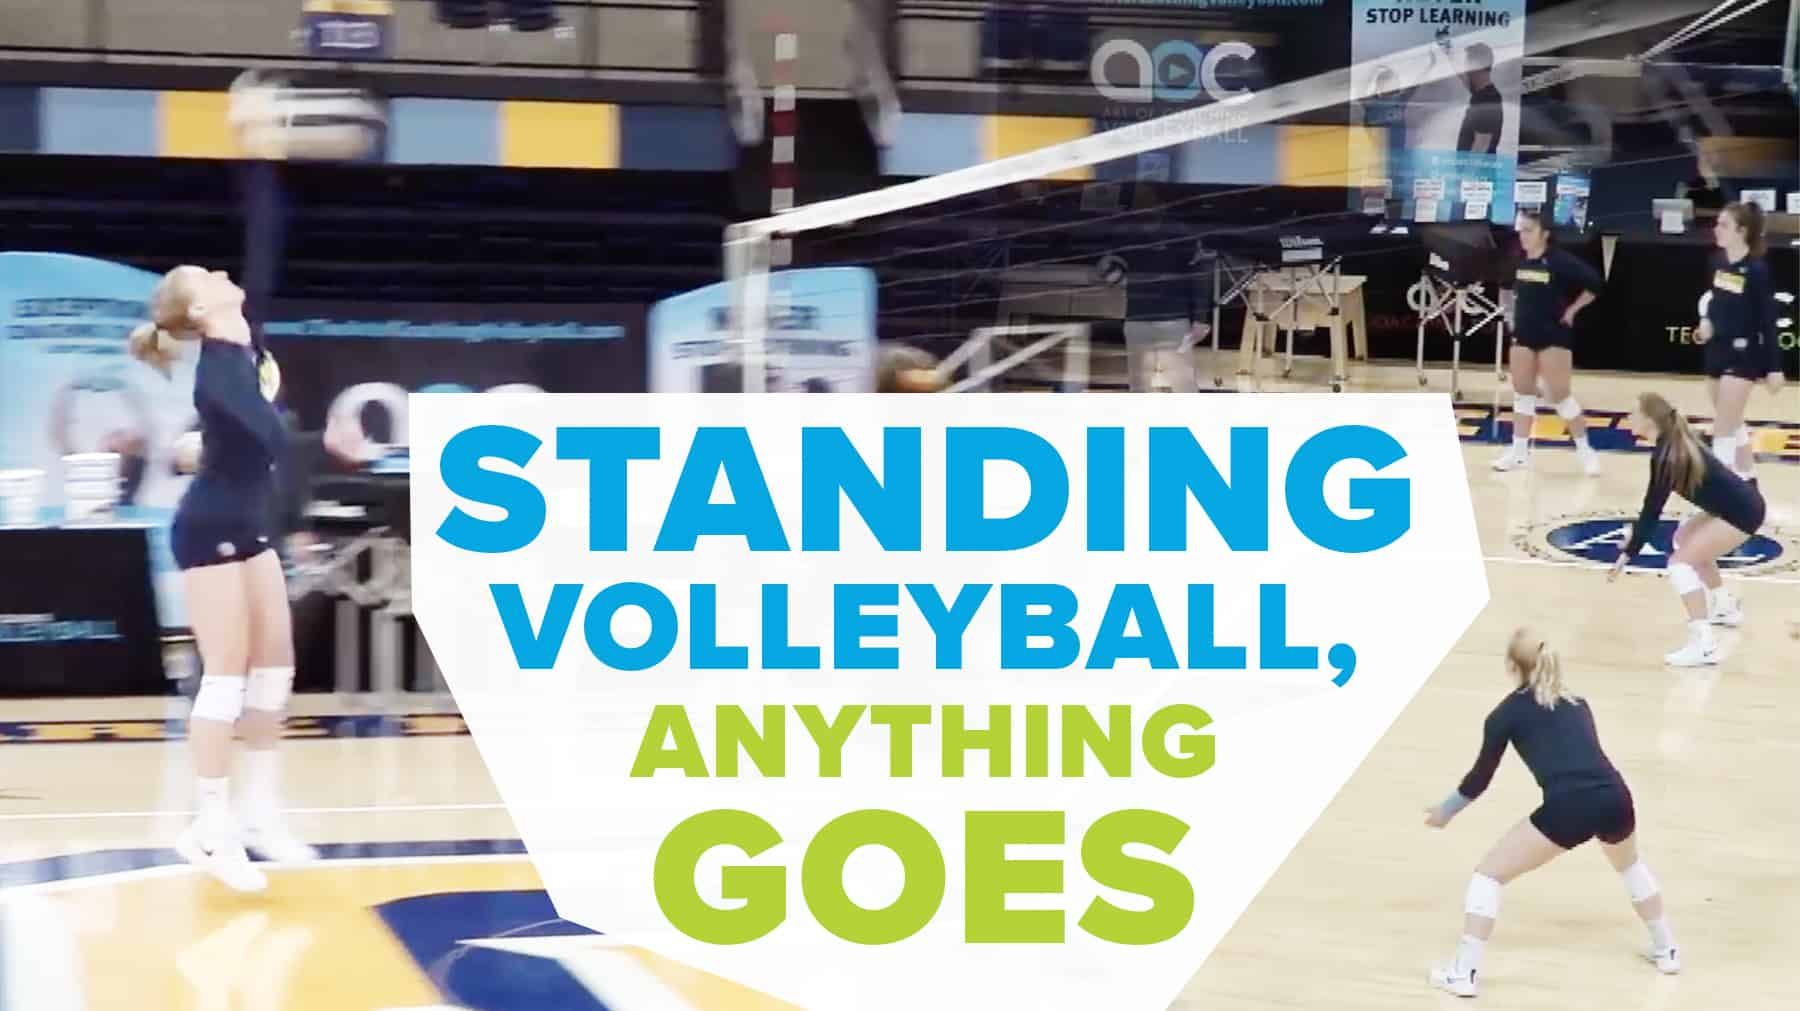 Standing Volleyball Anything Goes Coaching Volleyball Volleyball Volleyball Training